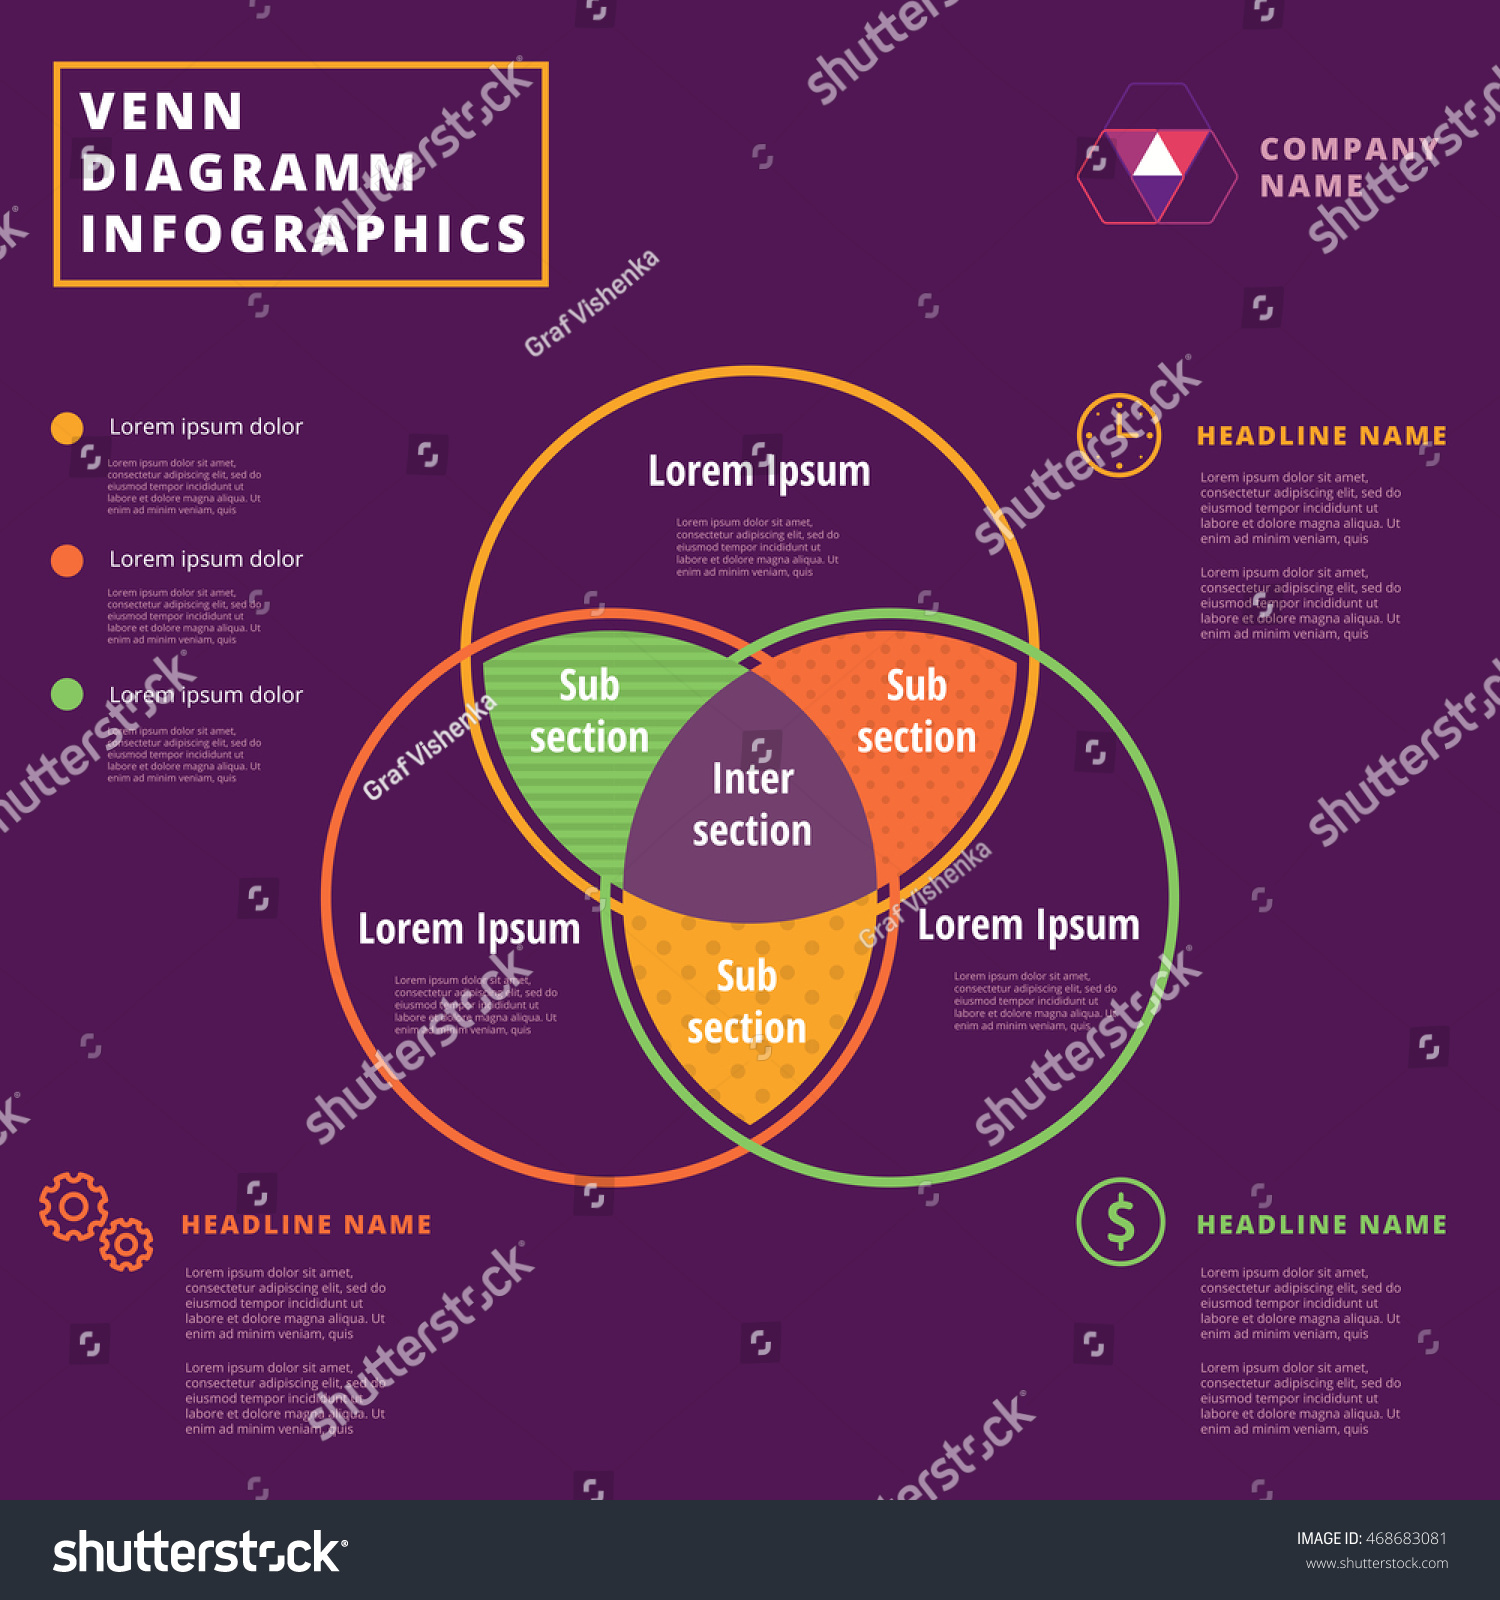 hight resolution of venn diagram vector circles infographics template design overlapping shapes for set or logic graphic